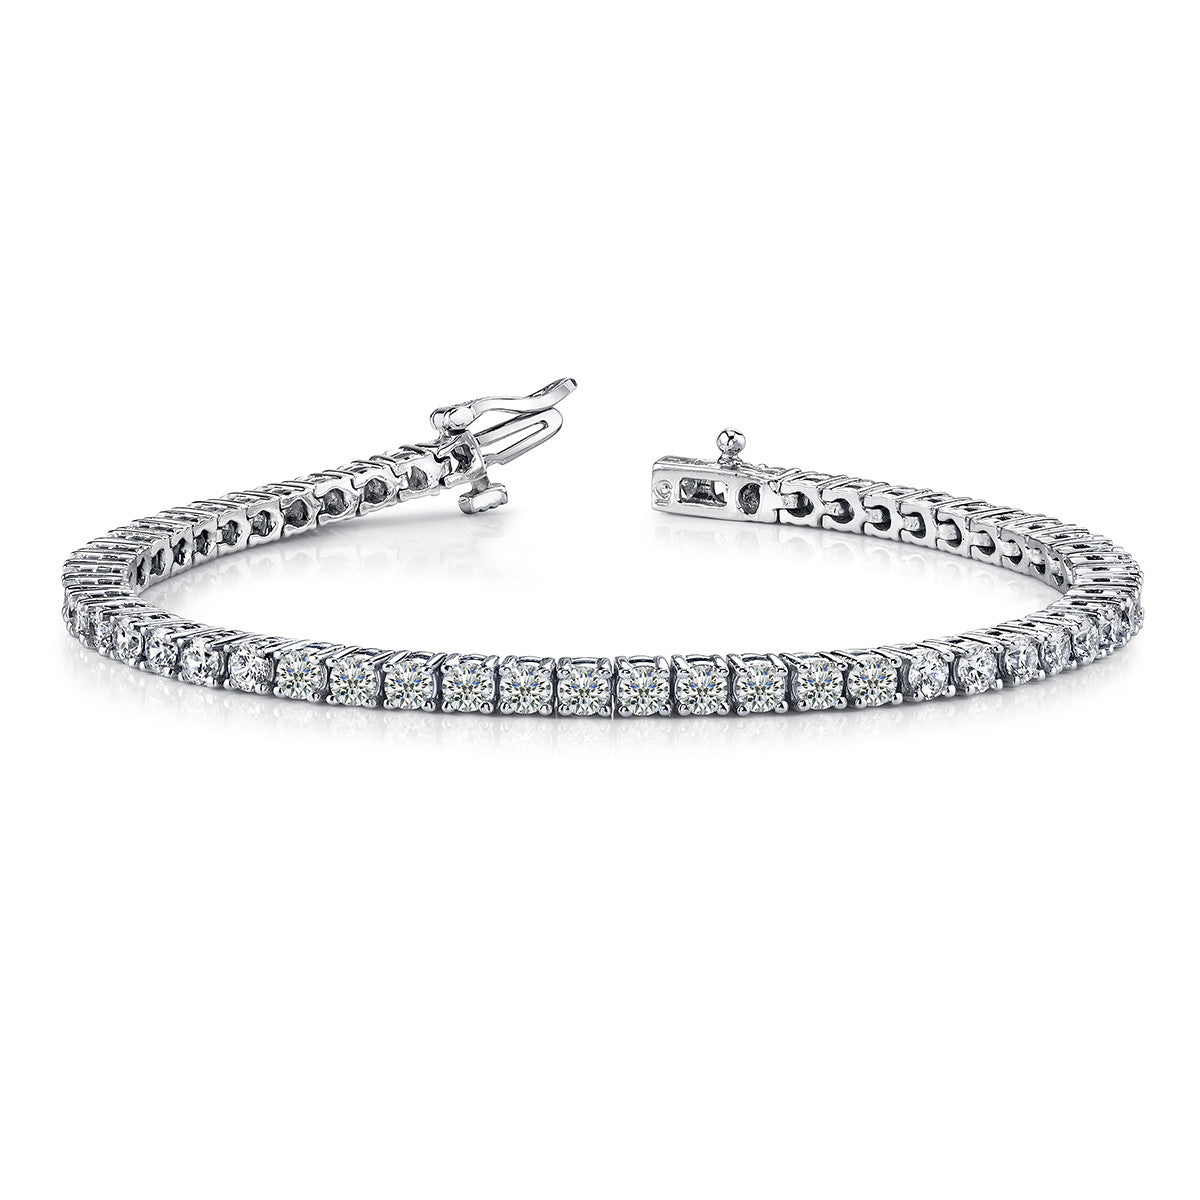 2 Carat Round 14K White Gold 4 Prong Diamond Tennis Bracelet (Classic Quality)